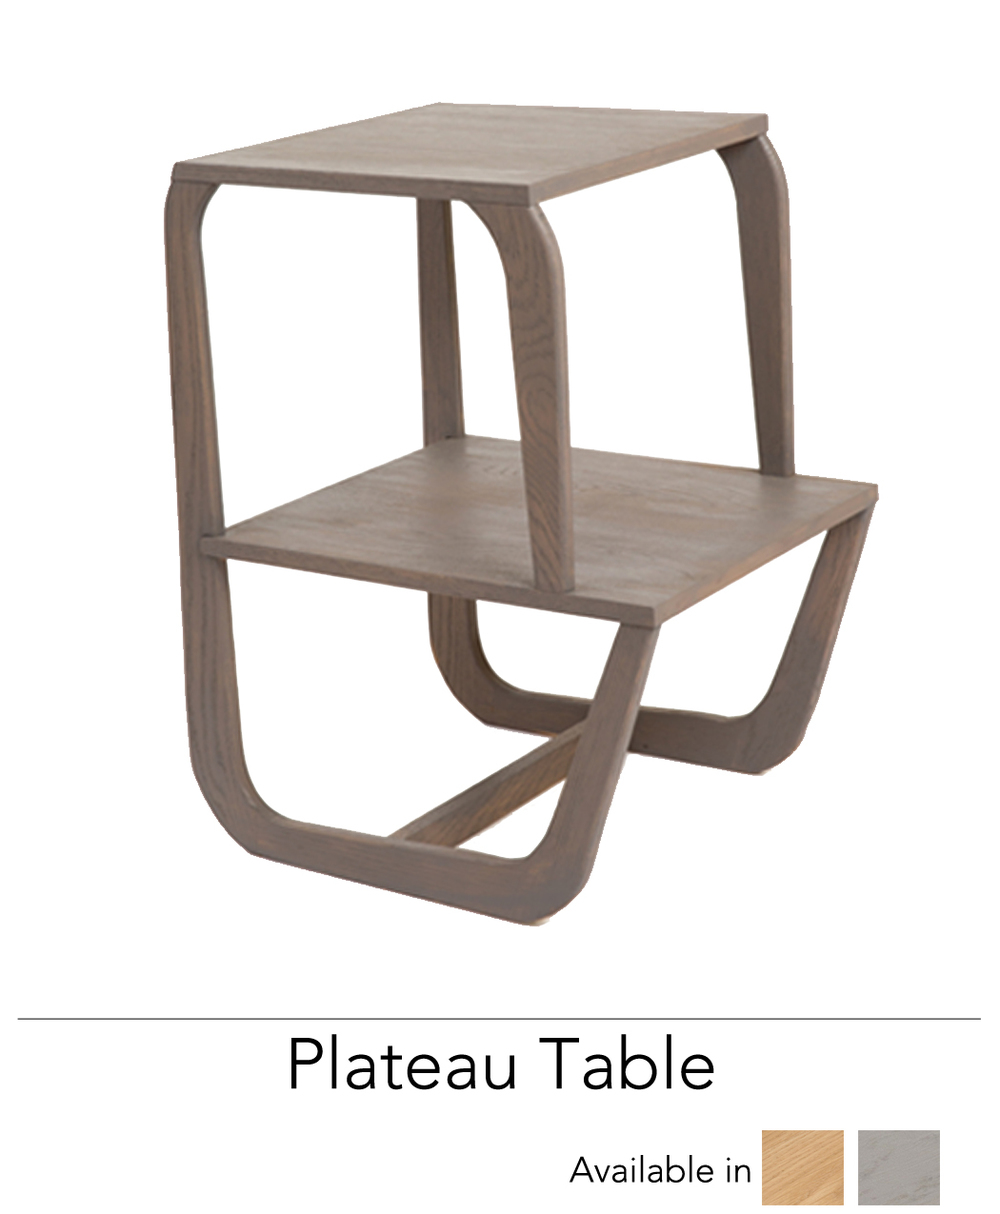 Plateau Table Front New.jpg